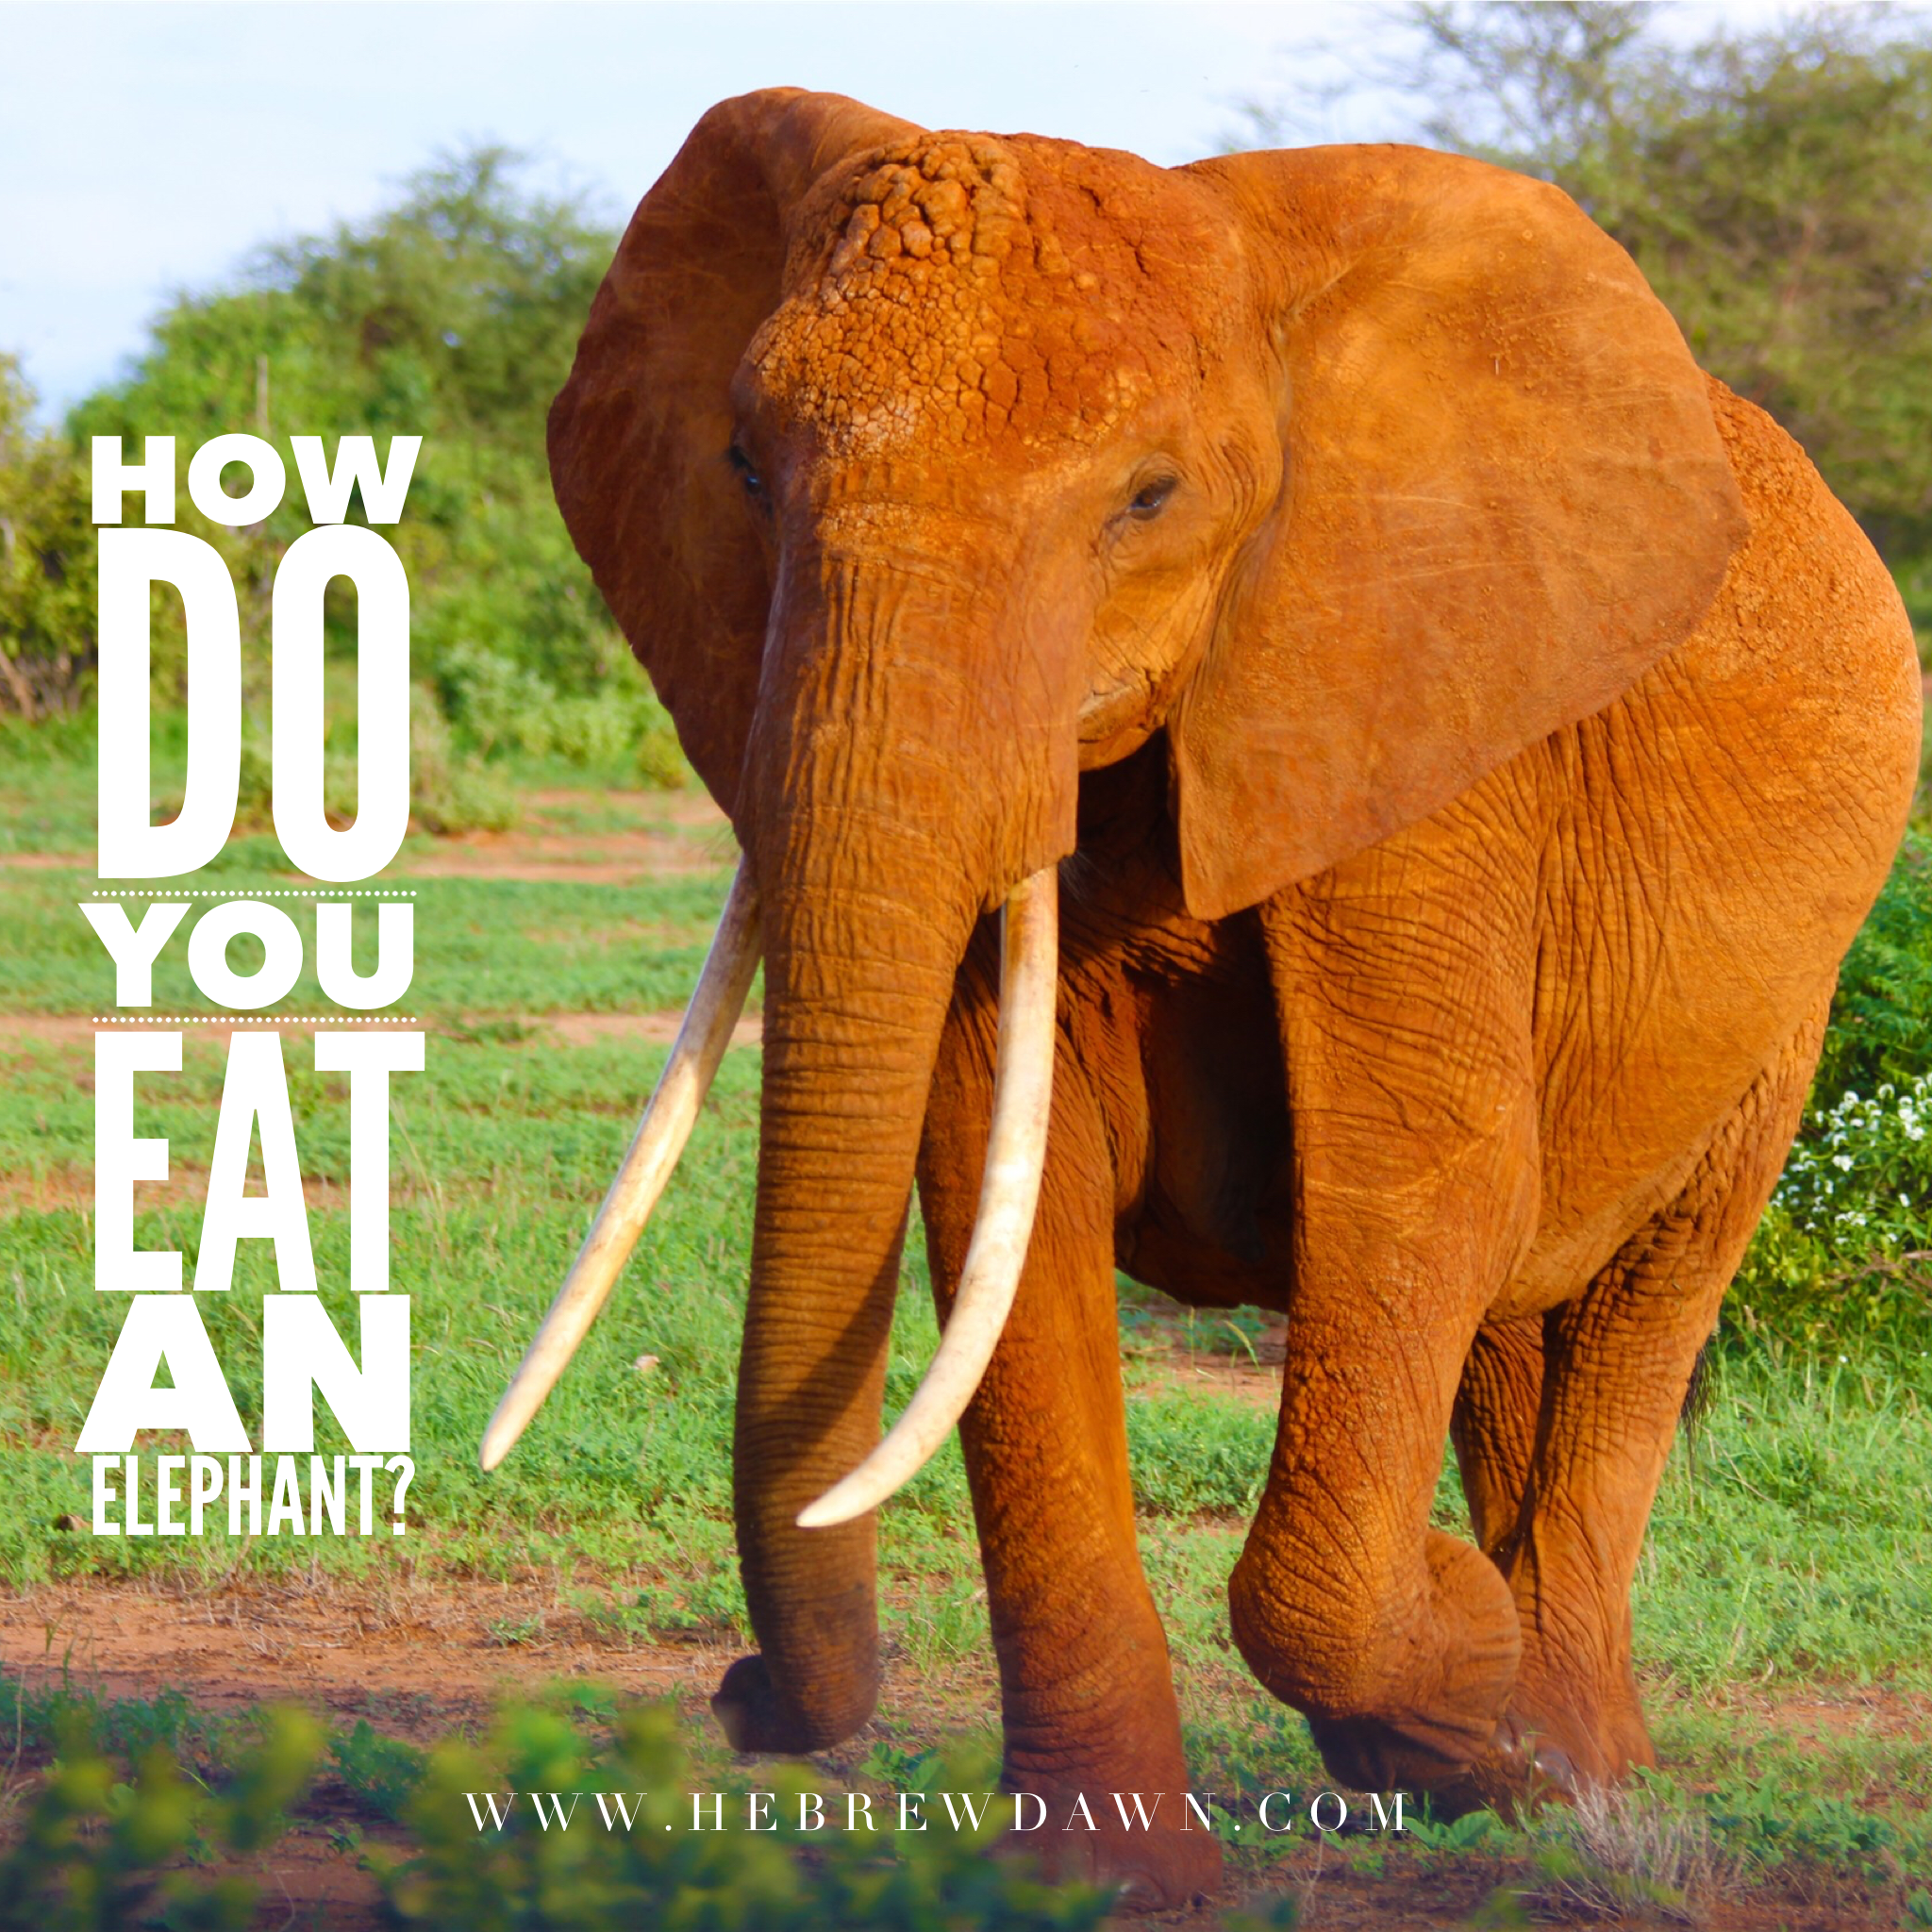 HebrewDawn: How do you eat an elephant? Bite, by bite.